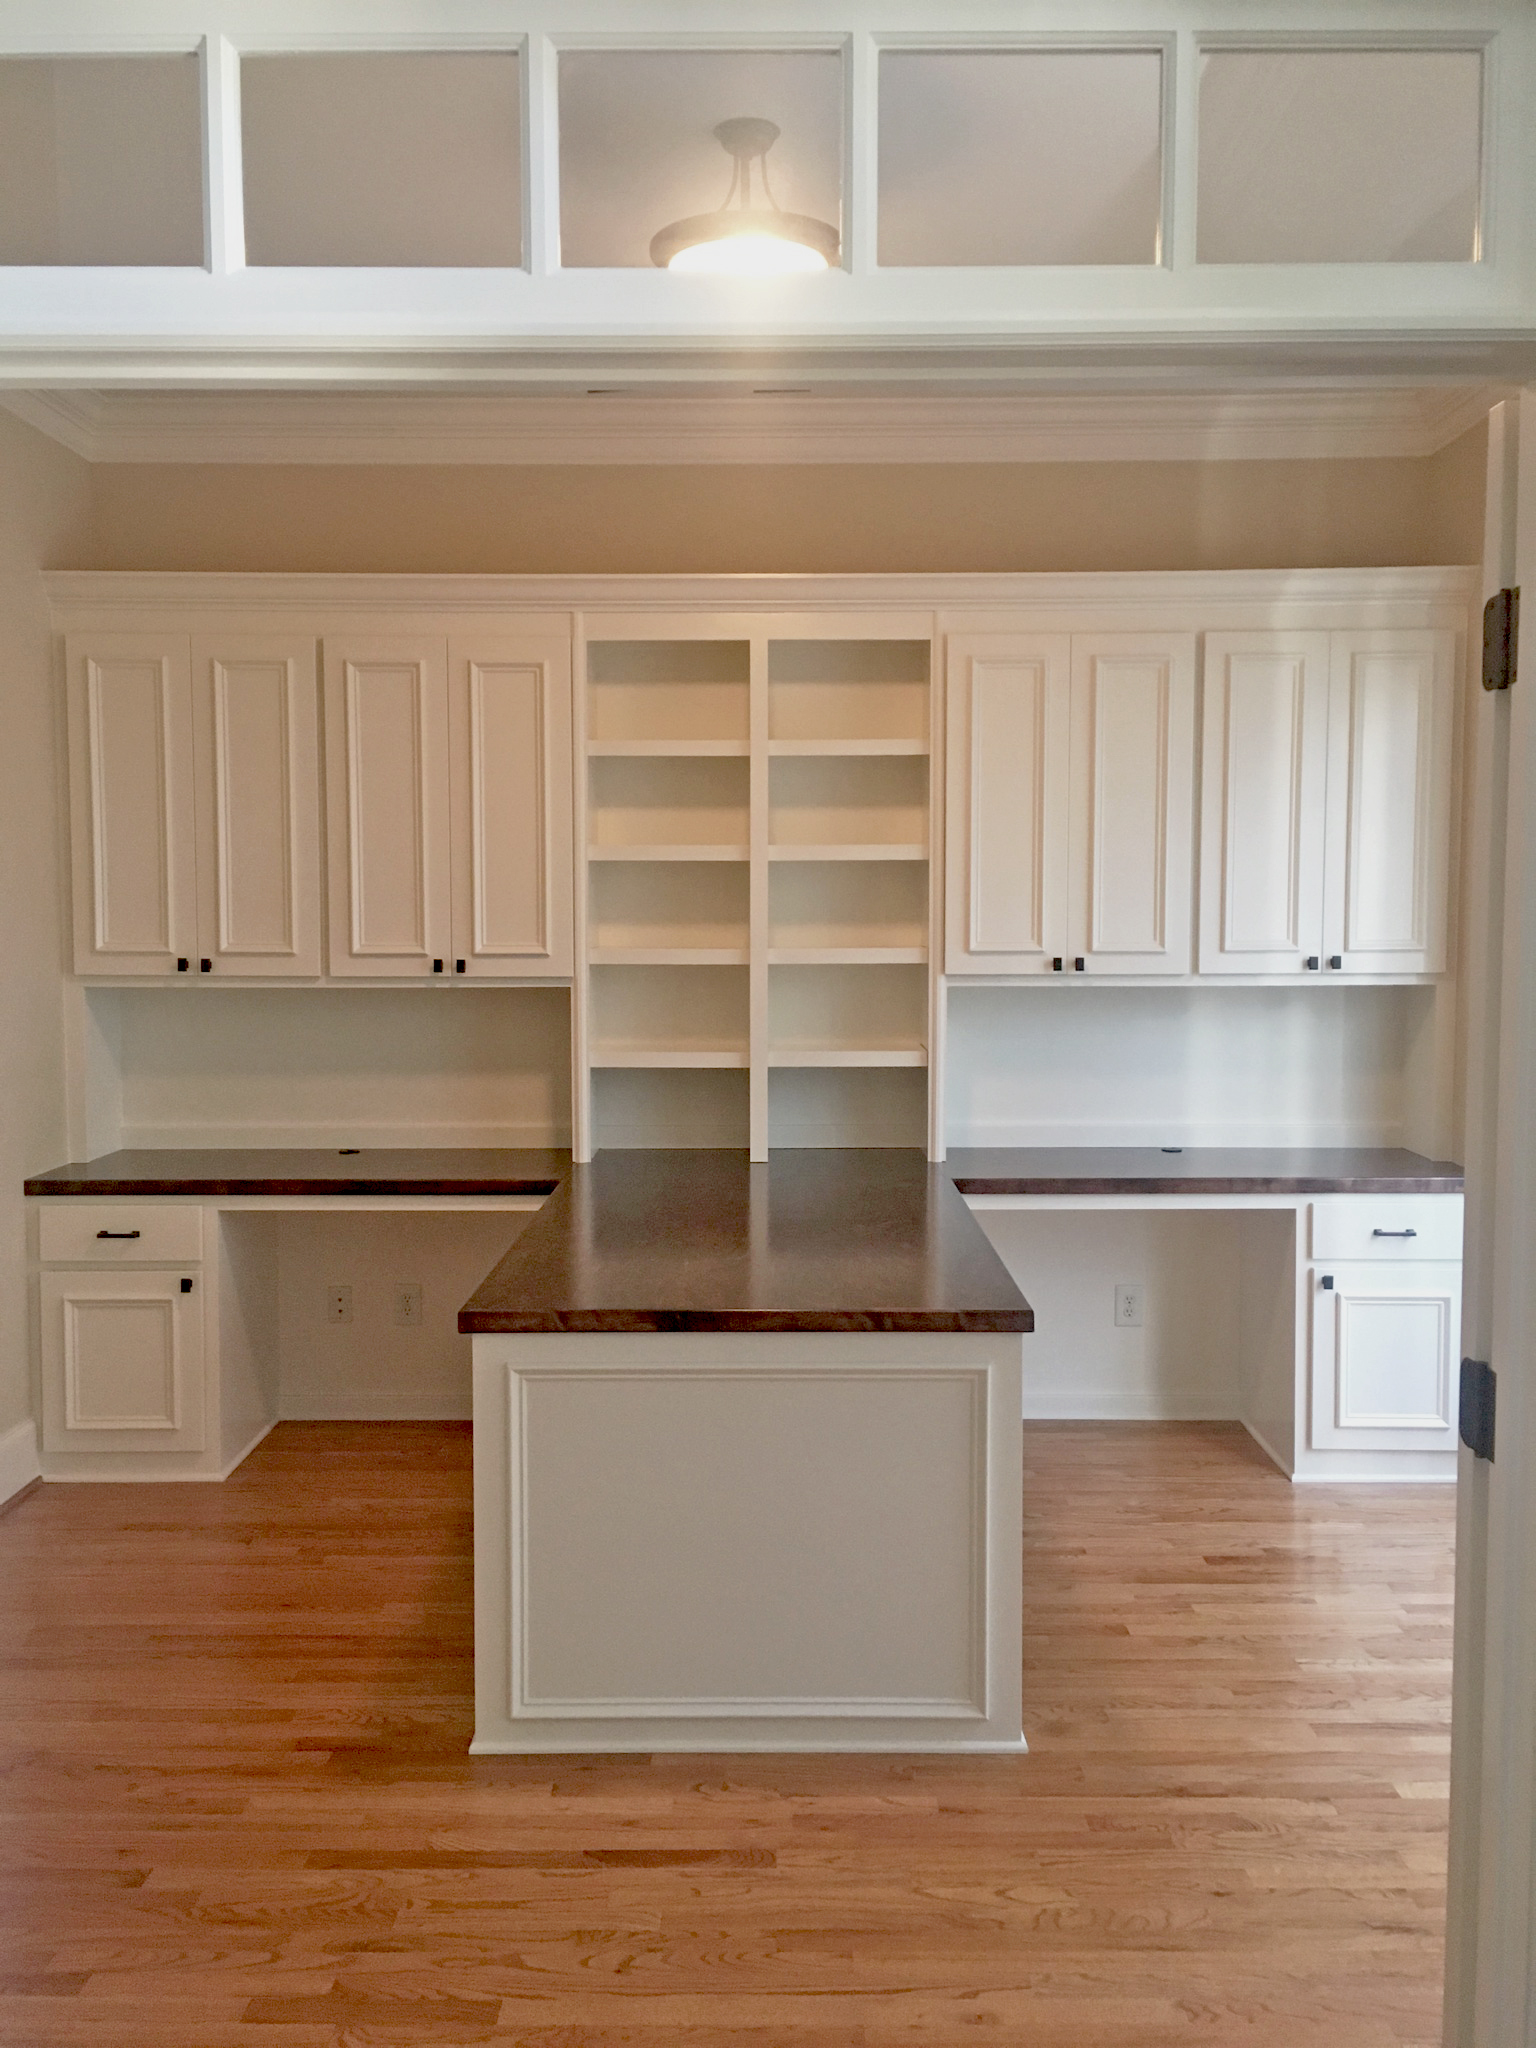 Custom Desk with Adjustable Shelves, Center Island & Applied Panel Doors and Drawers